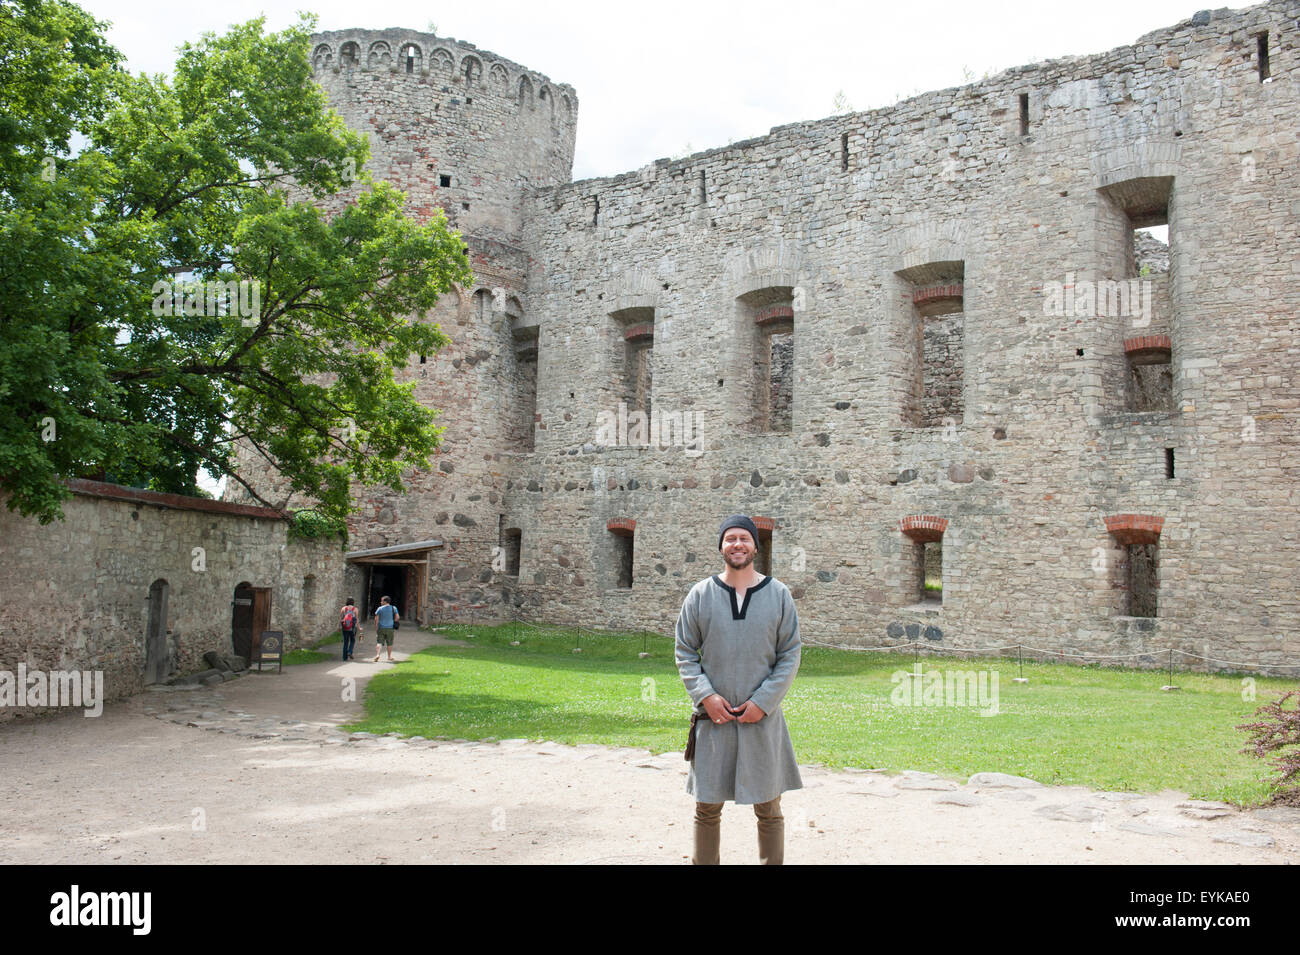 A costumed interpreter at Cesis Medieval Castle in Latvia. July 16, 2015 - Stock Image